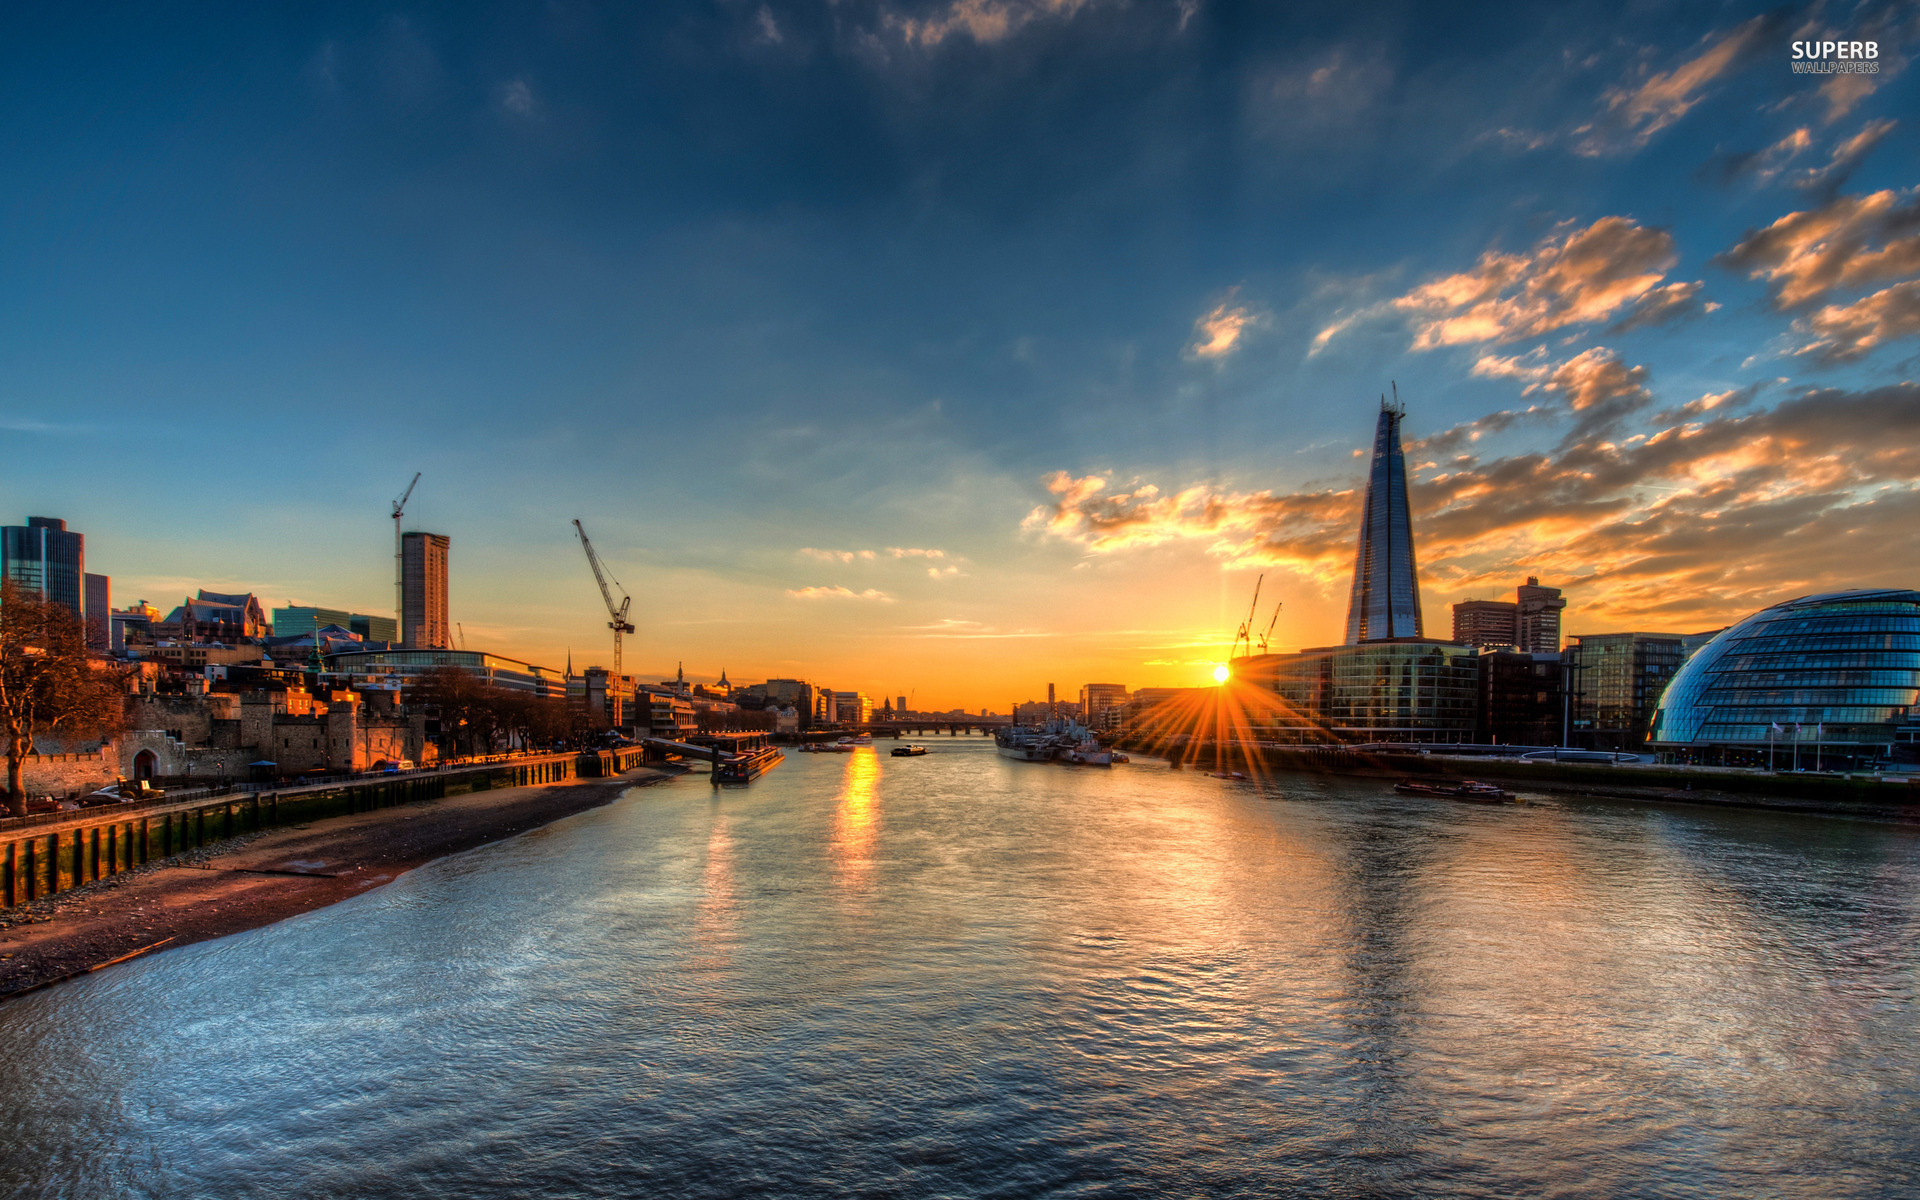 Sunset over the river Thames wallpaper 1920x1200